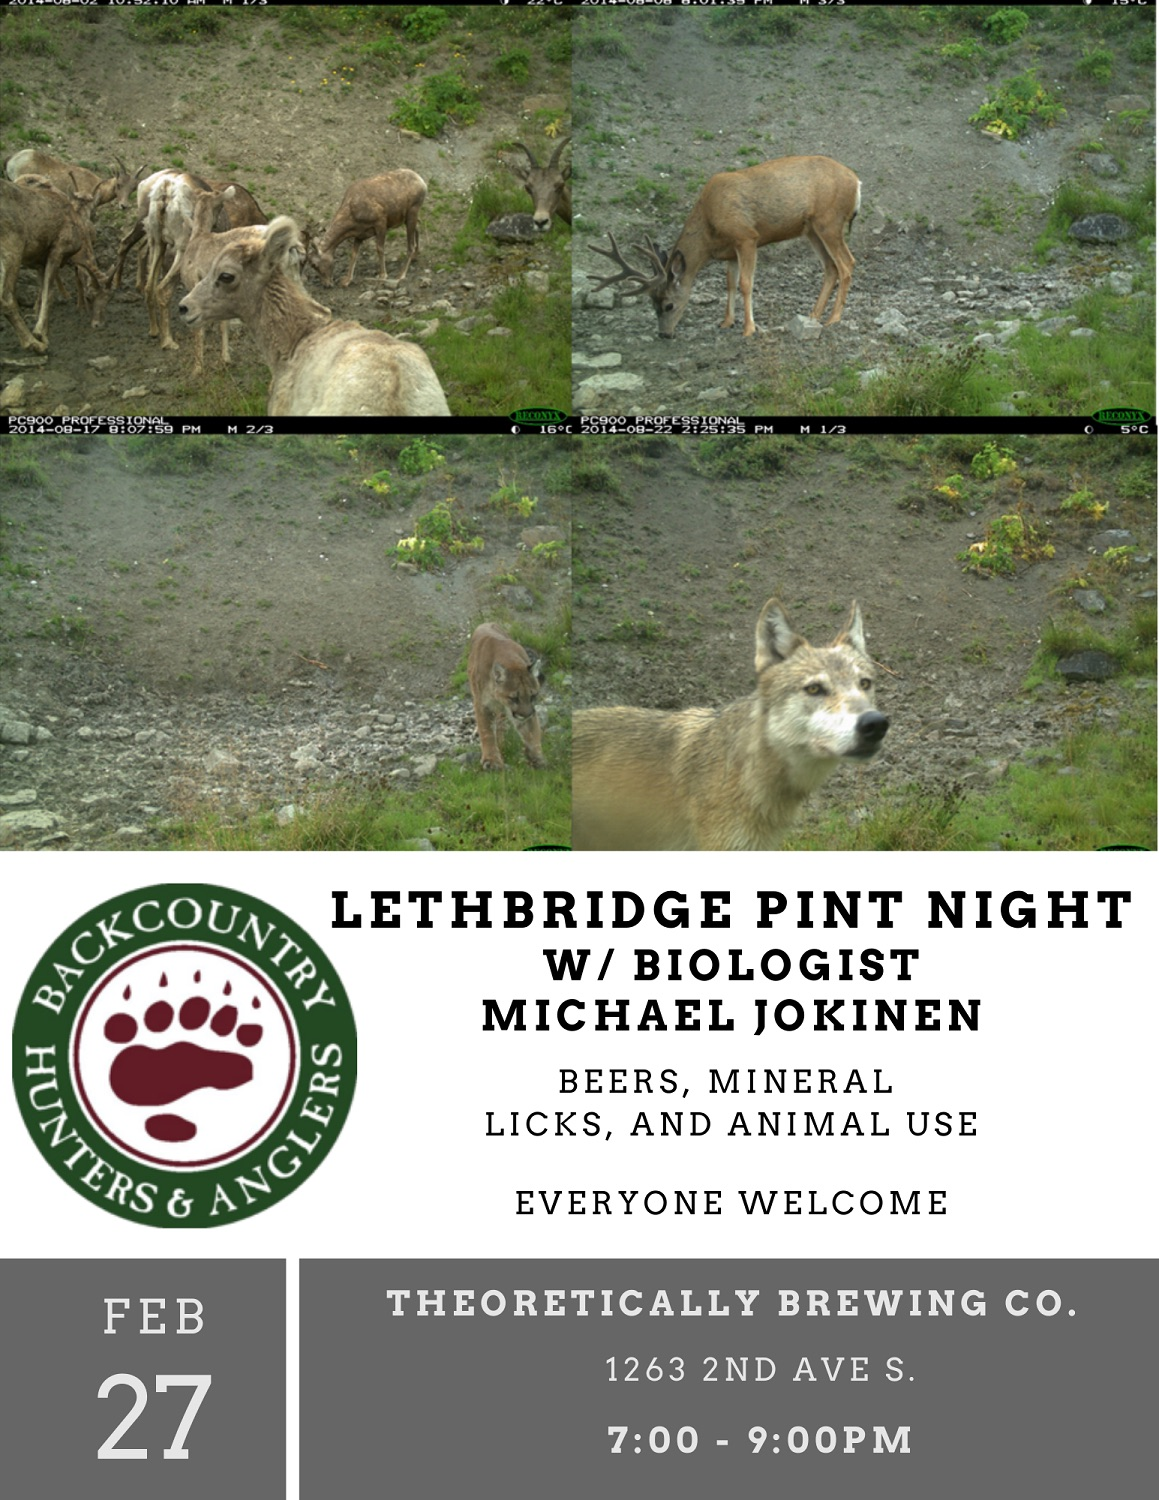 LethbridgePintNight-FEB27.jpg